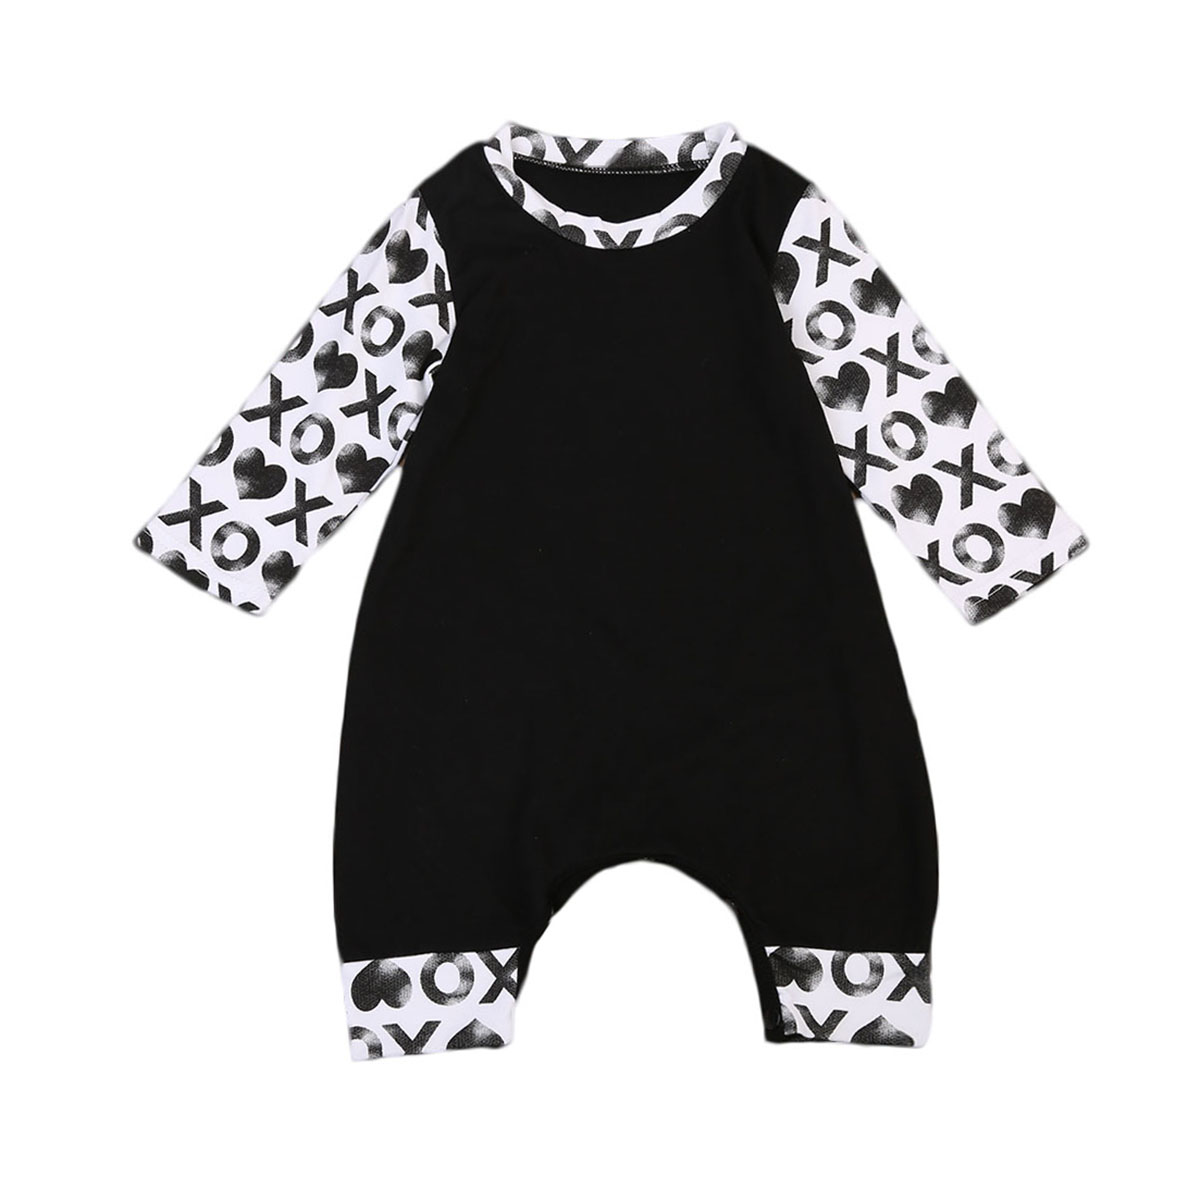 Newborn Kids Baby Boys Cotton Clothes Autumn Warm Jumpsuit Romper Long Sleeve Sunsuit Body Clothing spring autumn newborn baby rompers cartoon infant kids boys girls warm clothing romper jumpsuit cotton long sleeve clothes